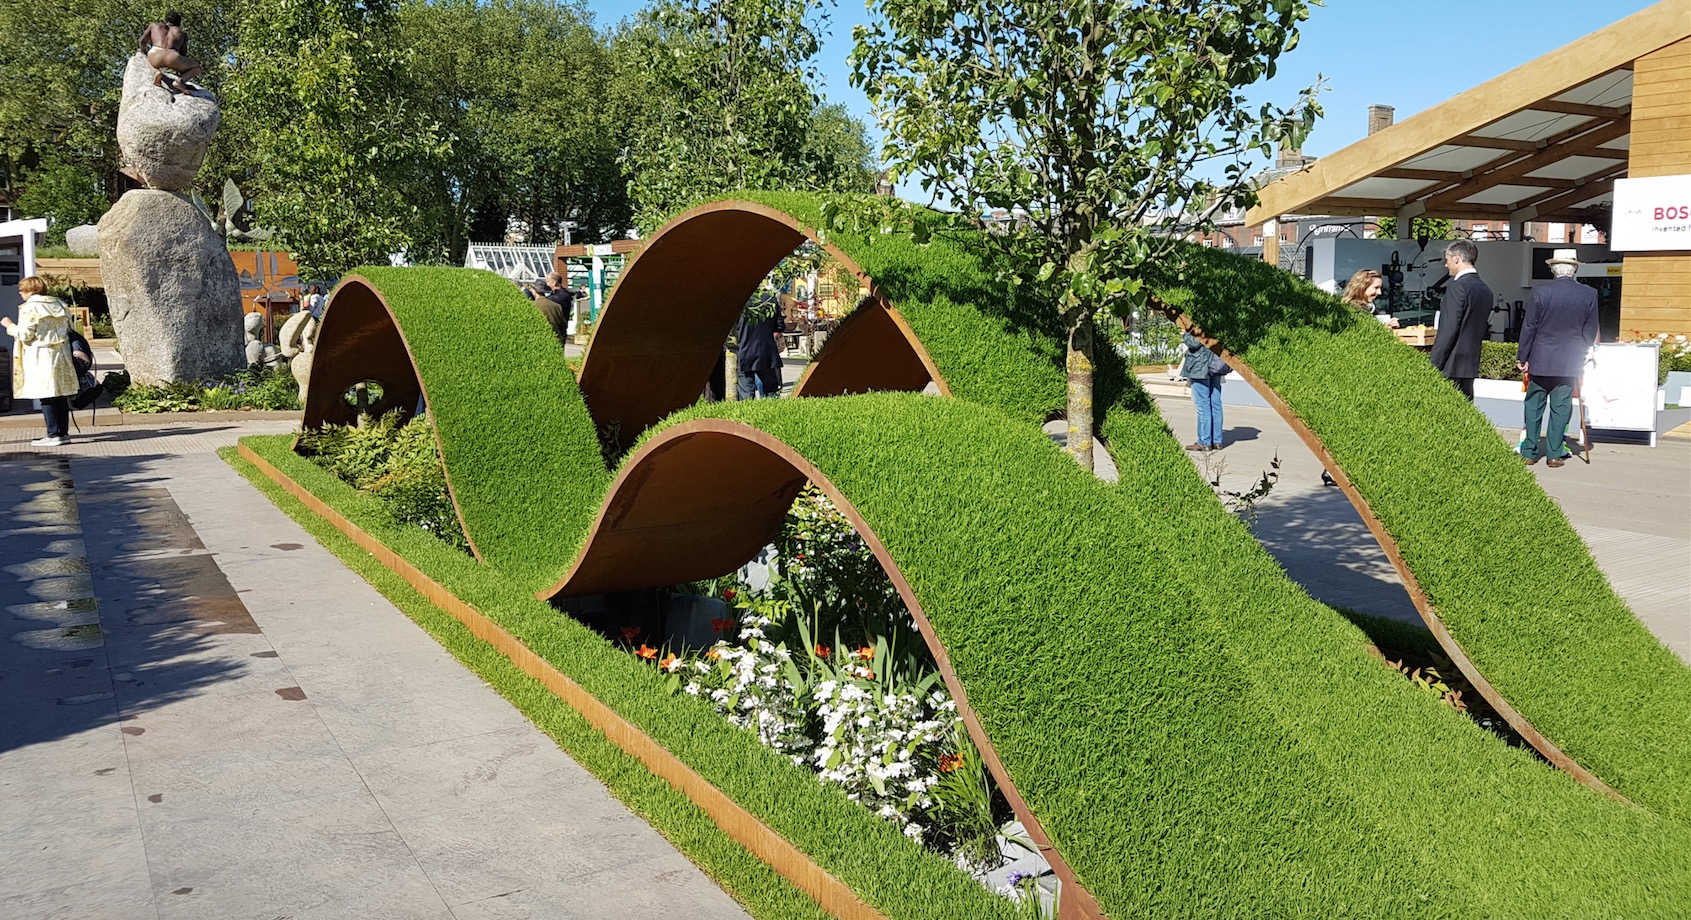 Chelsea flower show 2016 photos and highlights for Chelsea flower show garden designs